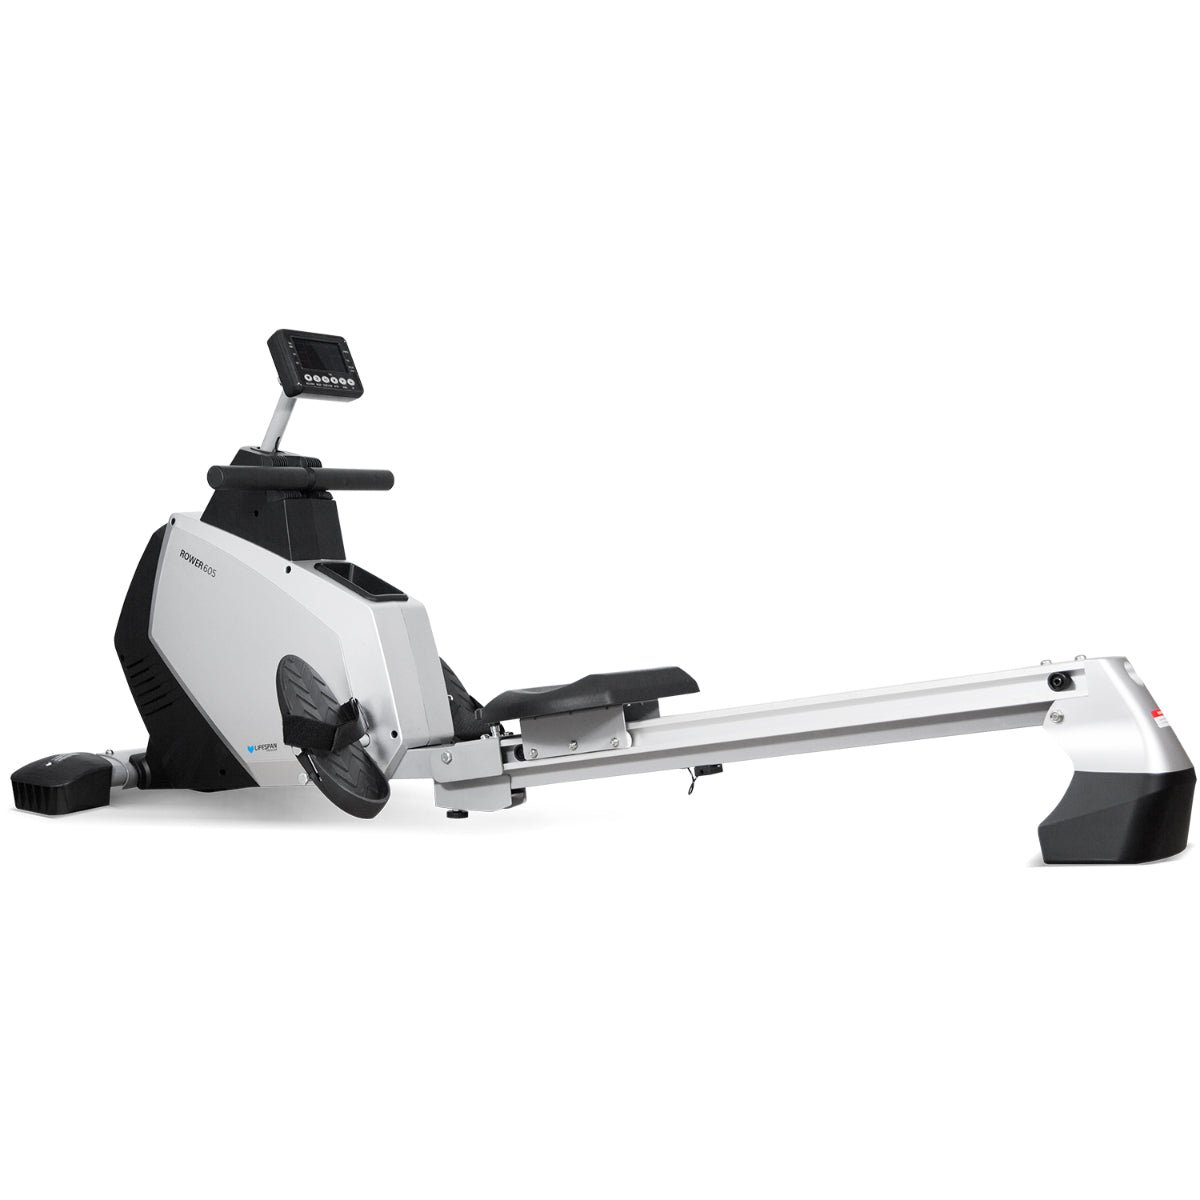 ROWER-605 Magnetic Rowing Machine | Lifespan Fitness